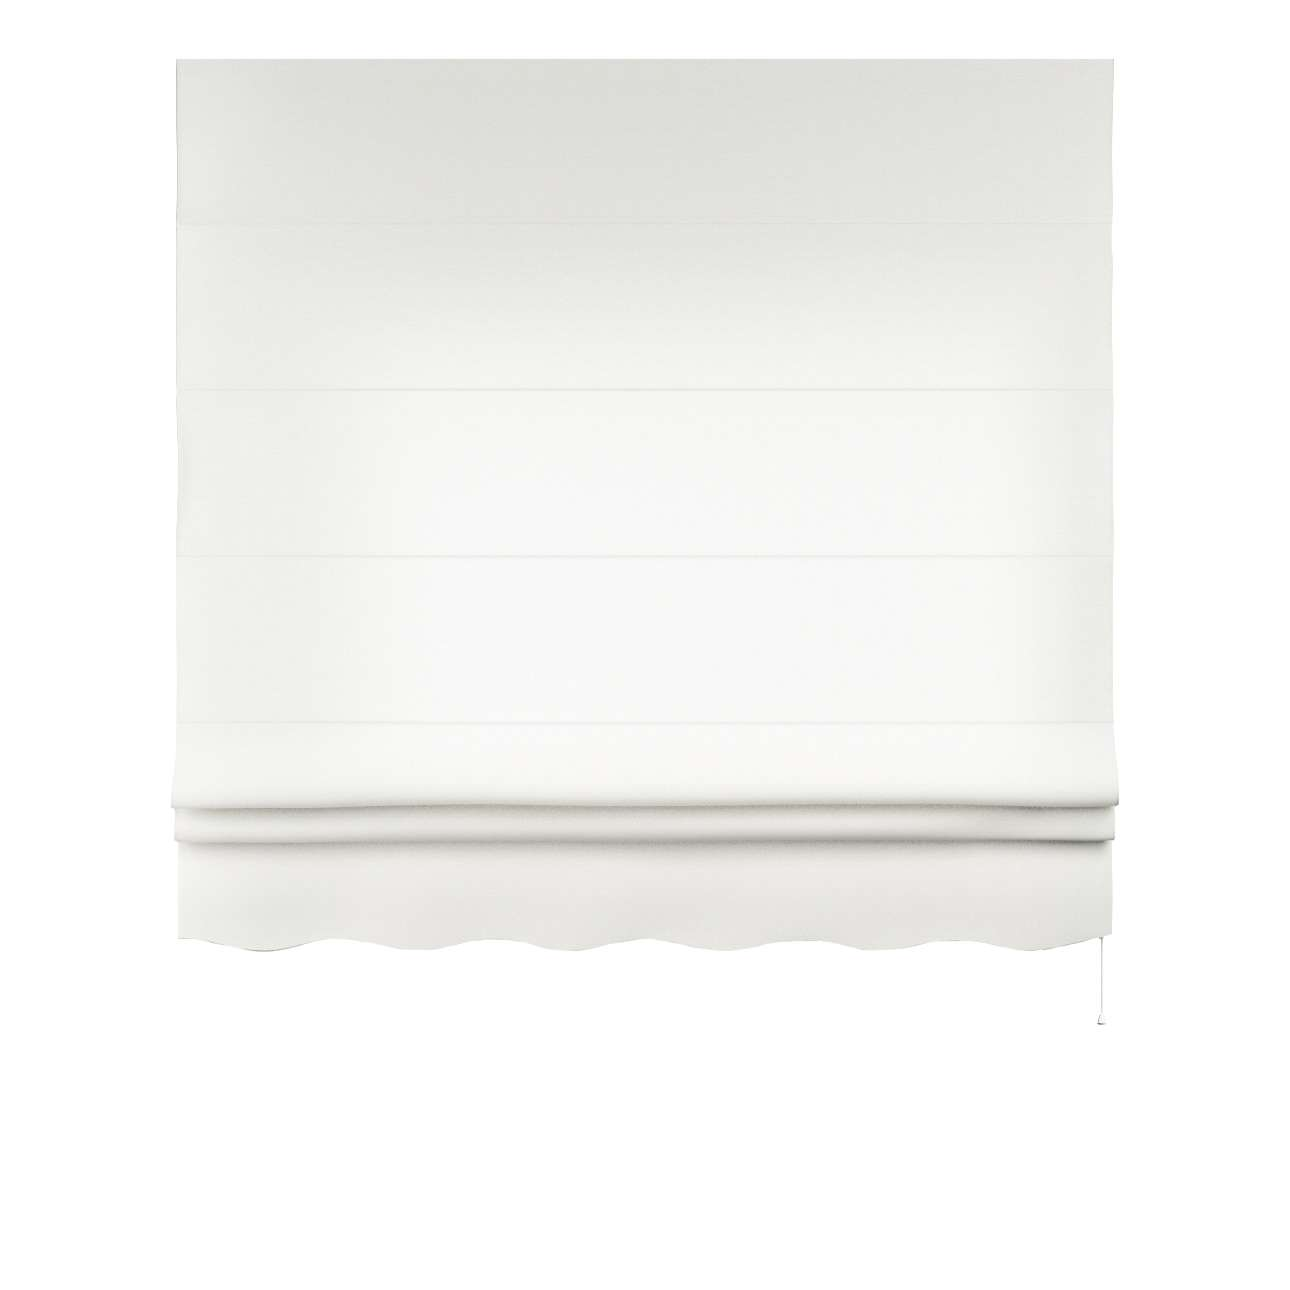 Mela roman blind in collection Cotton Story, fabric: 702-34